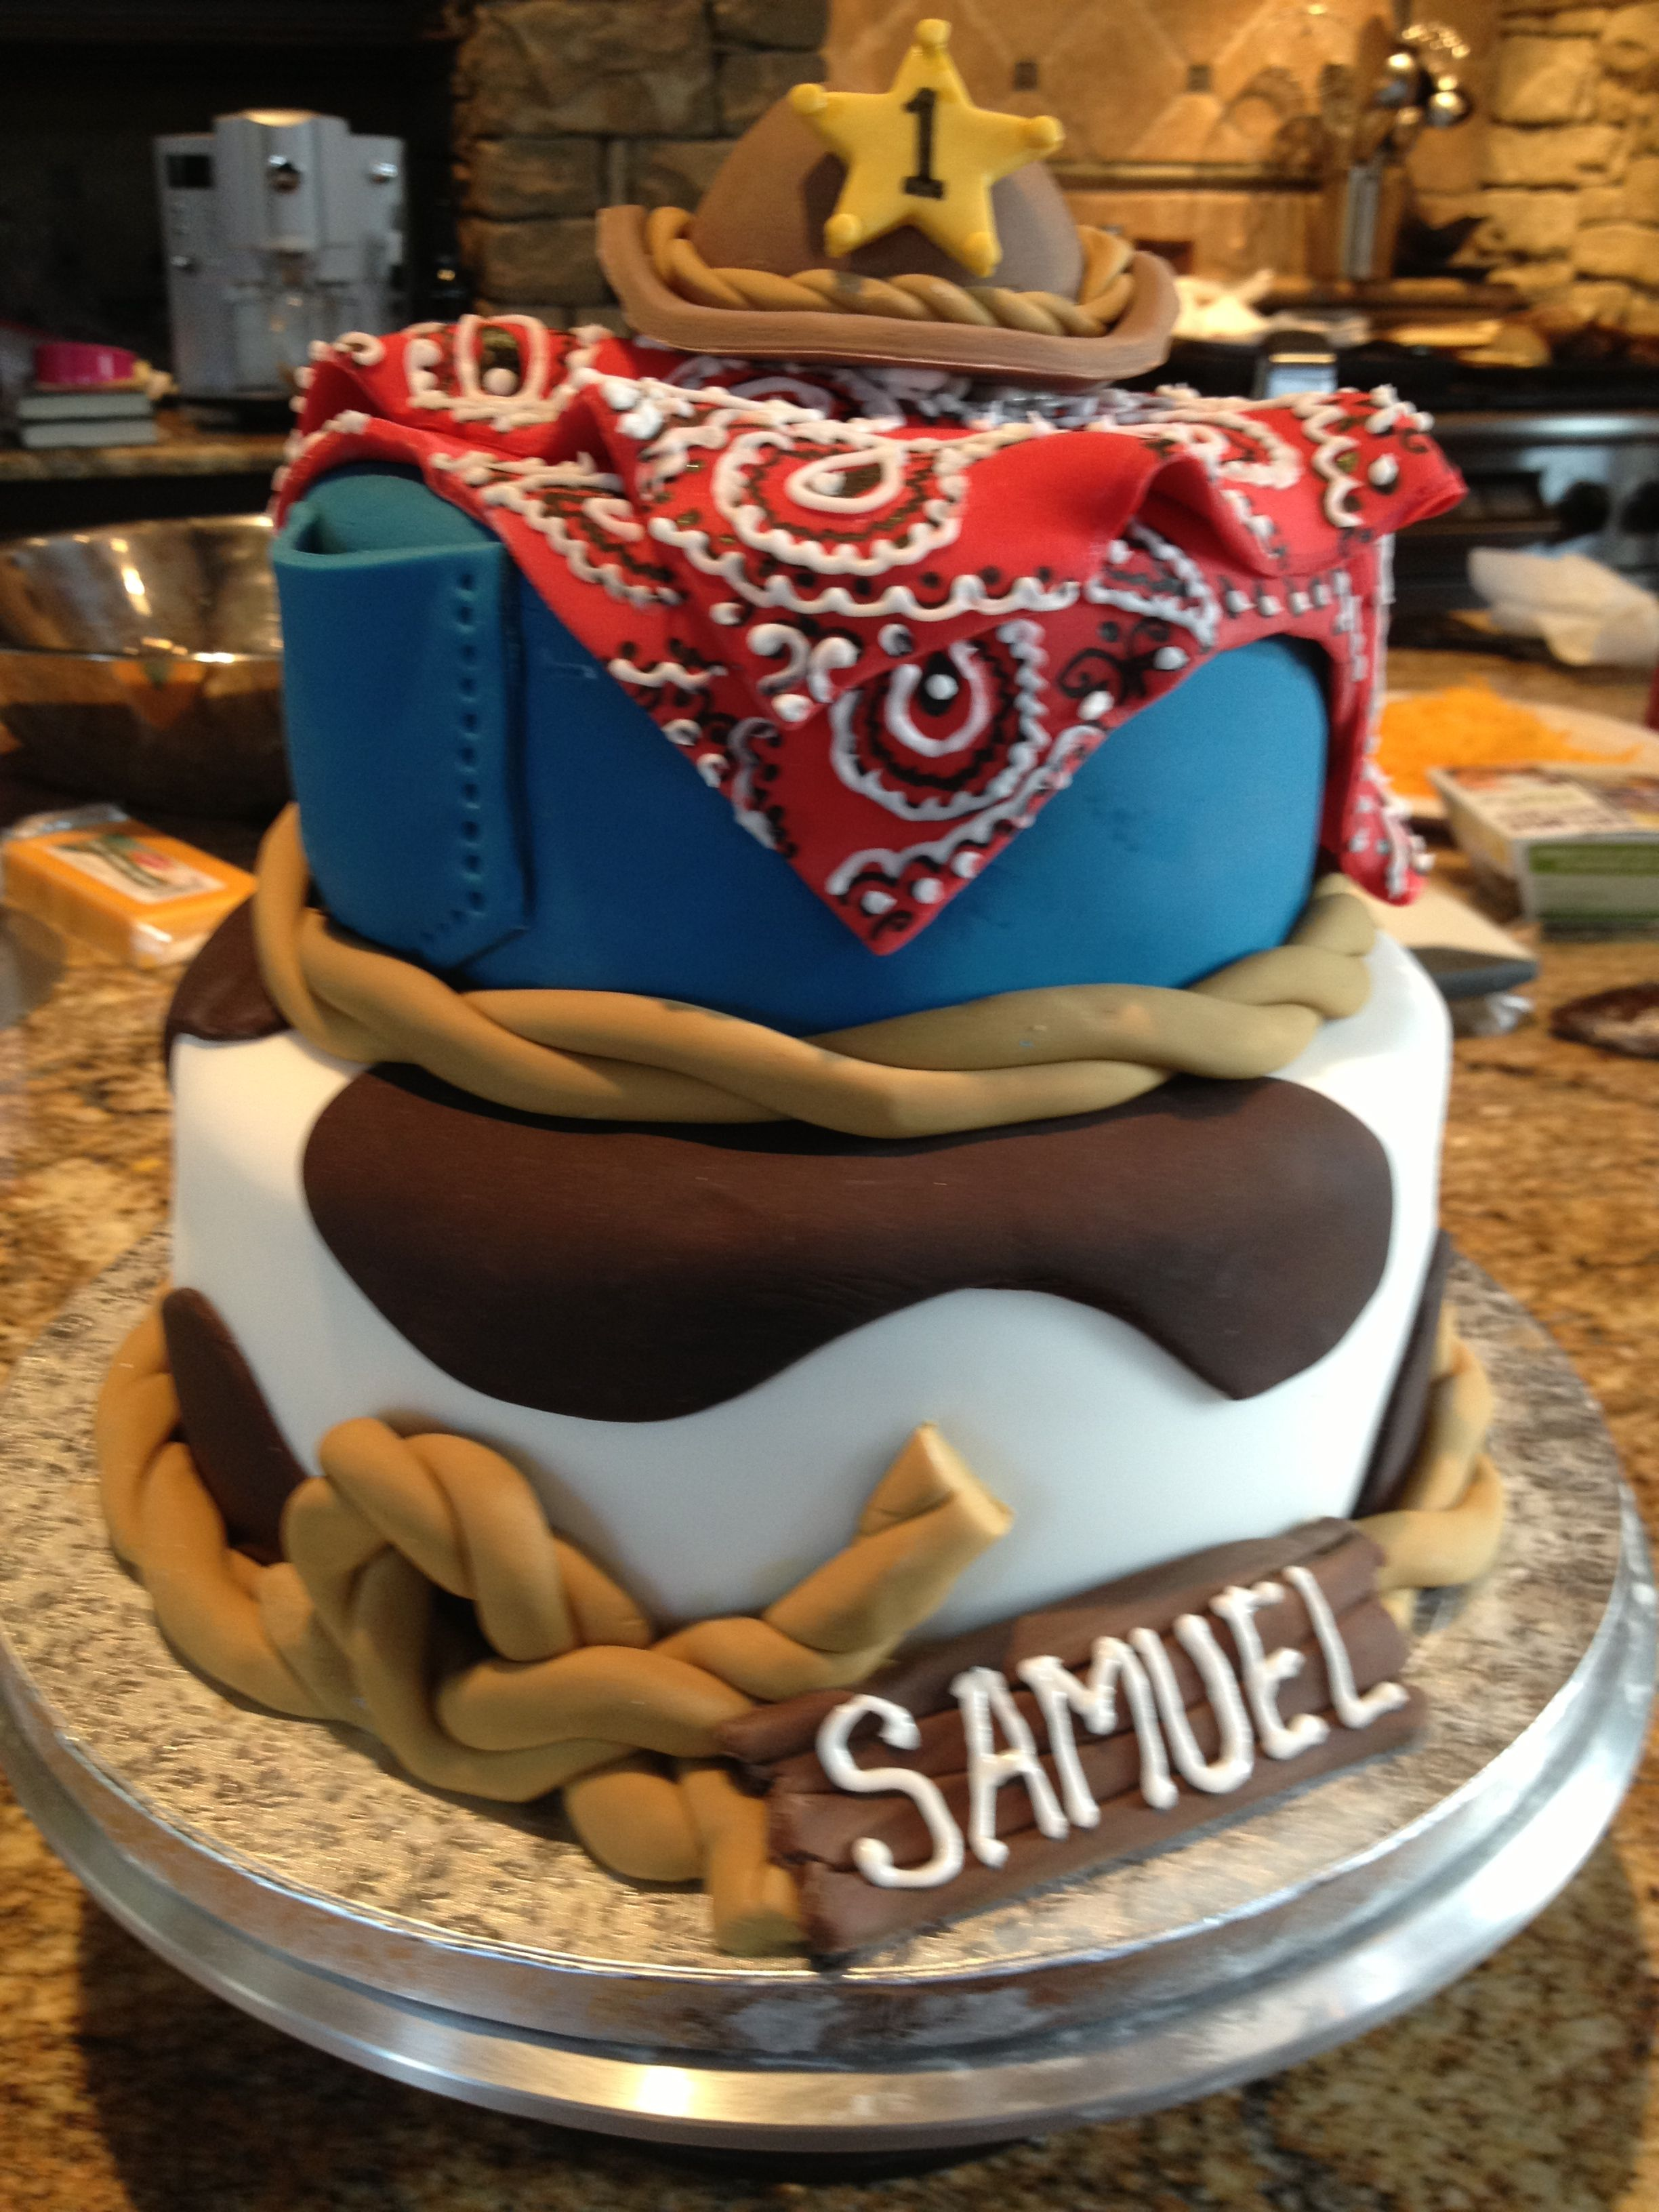 Swell Samuels First Birthday Cowboy Cake With Images Cowboy Funny Birthday Cards Online Inifofree Goldxyz